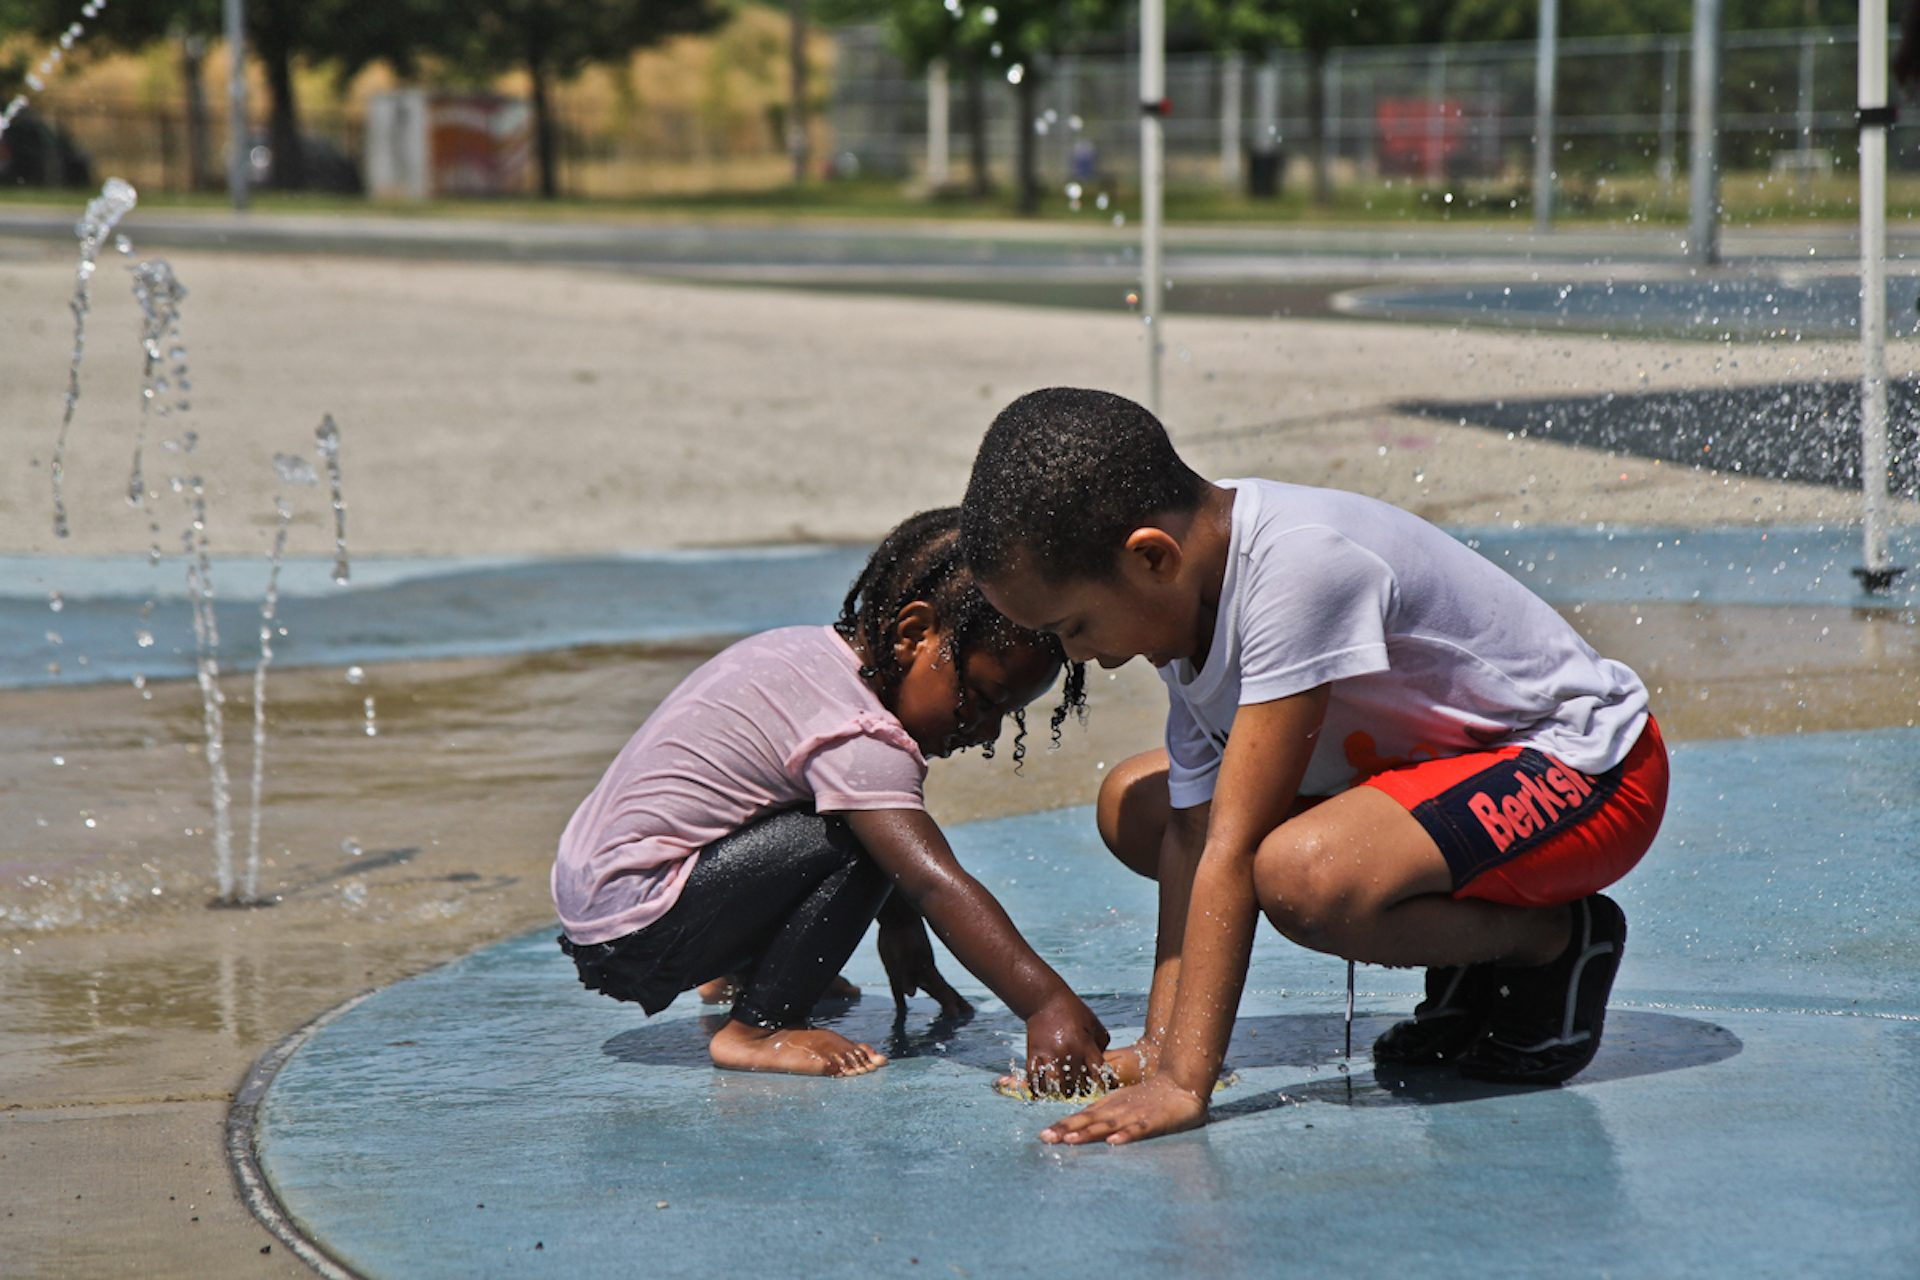 Spraygrounds in Philadelphia opened Monday, and kids at Mander playground were among the first to enjoy the streams.